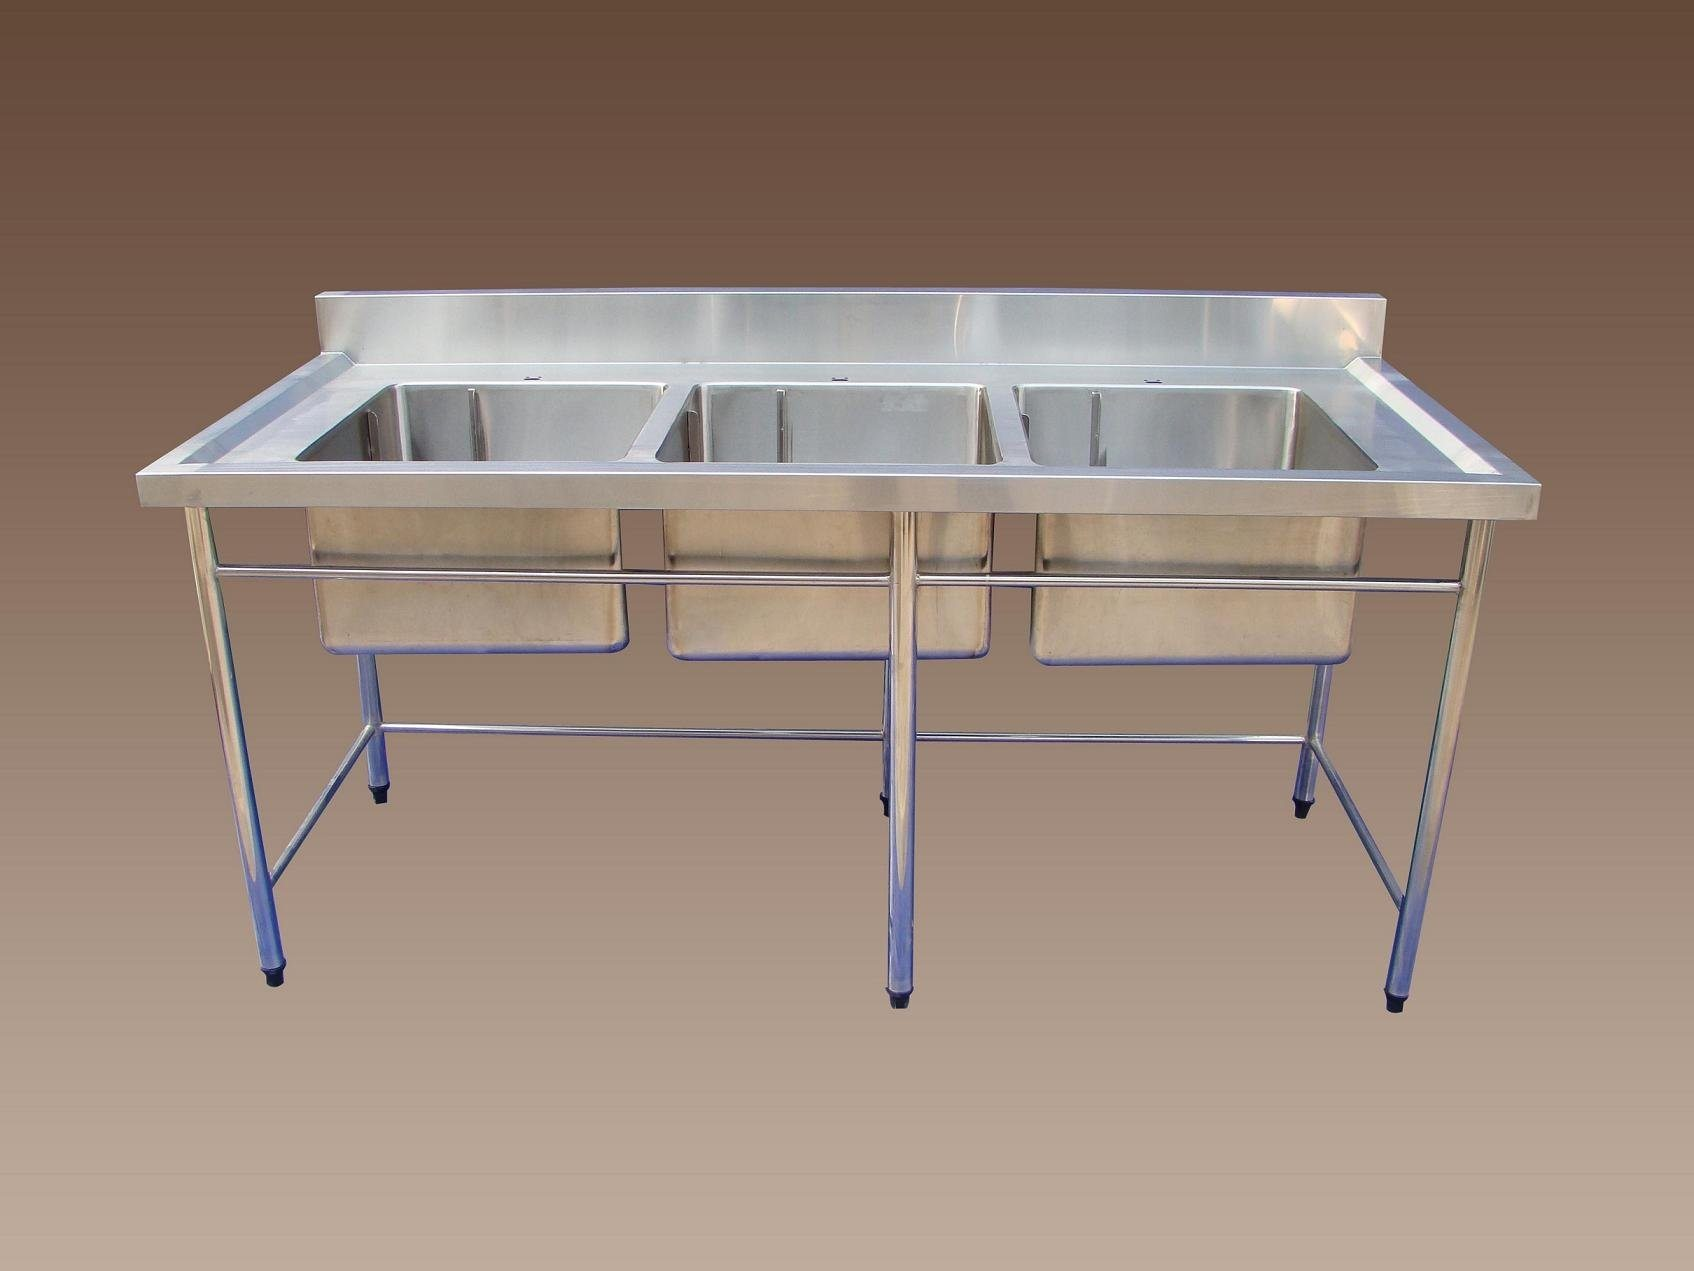 Stainless_steel_table_with_three_sinks